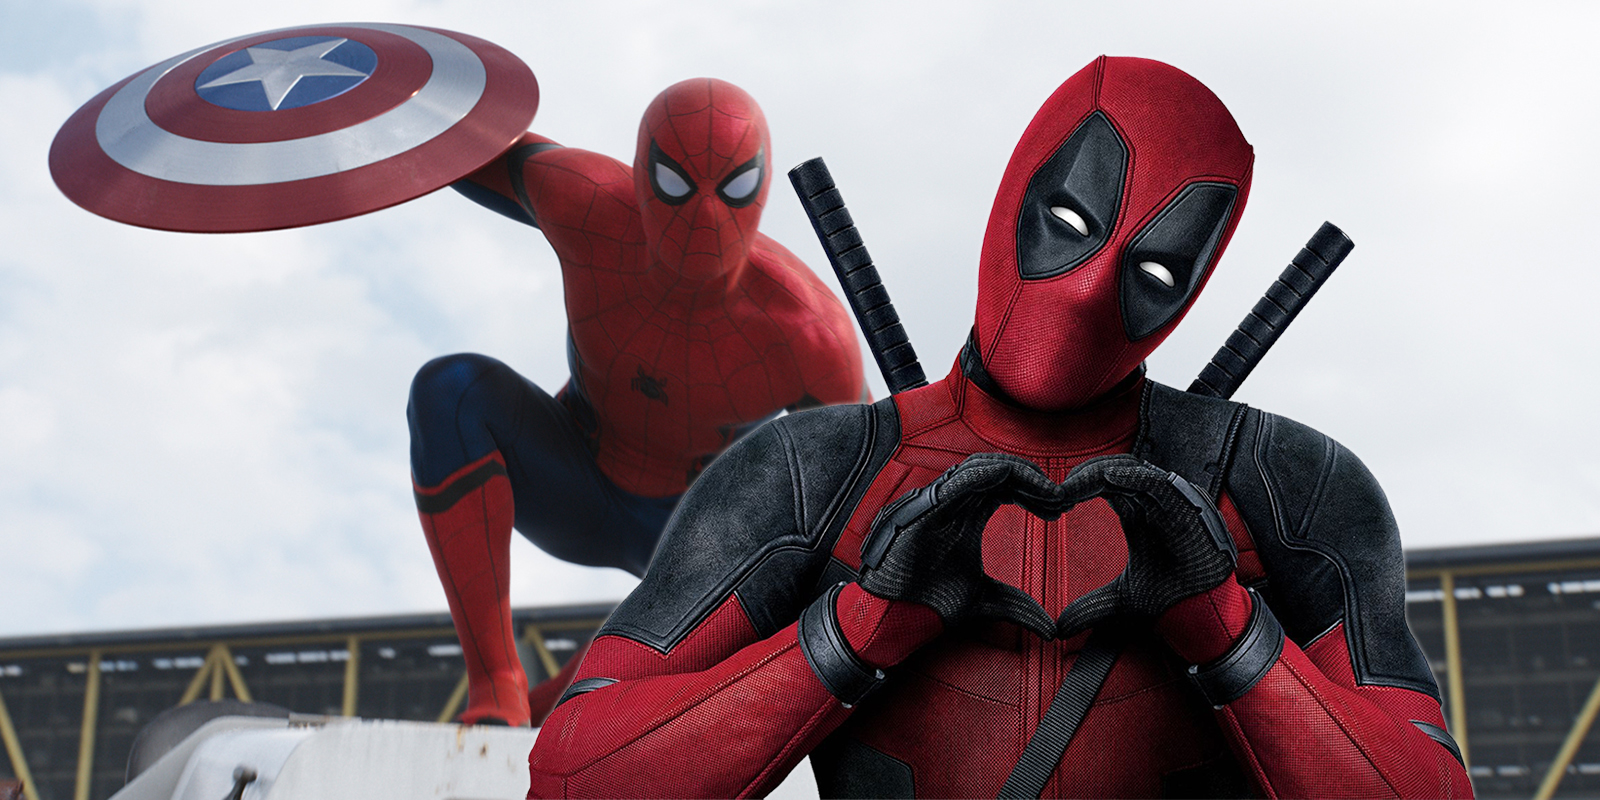 Tom Holland as Spider-Man and Ryan Reynolds as Deadpool